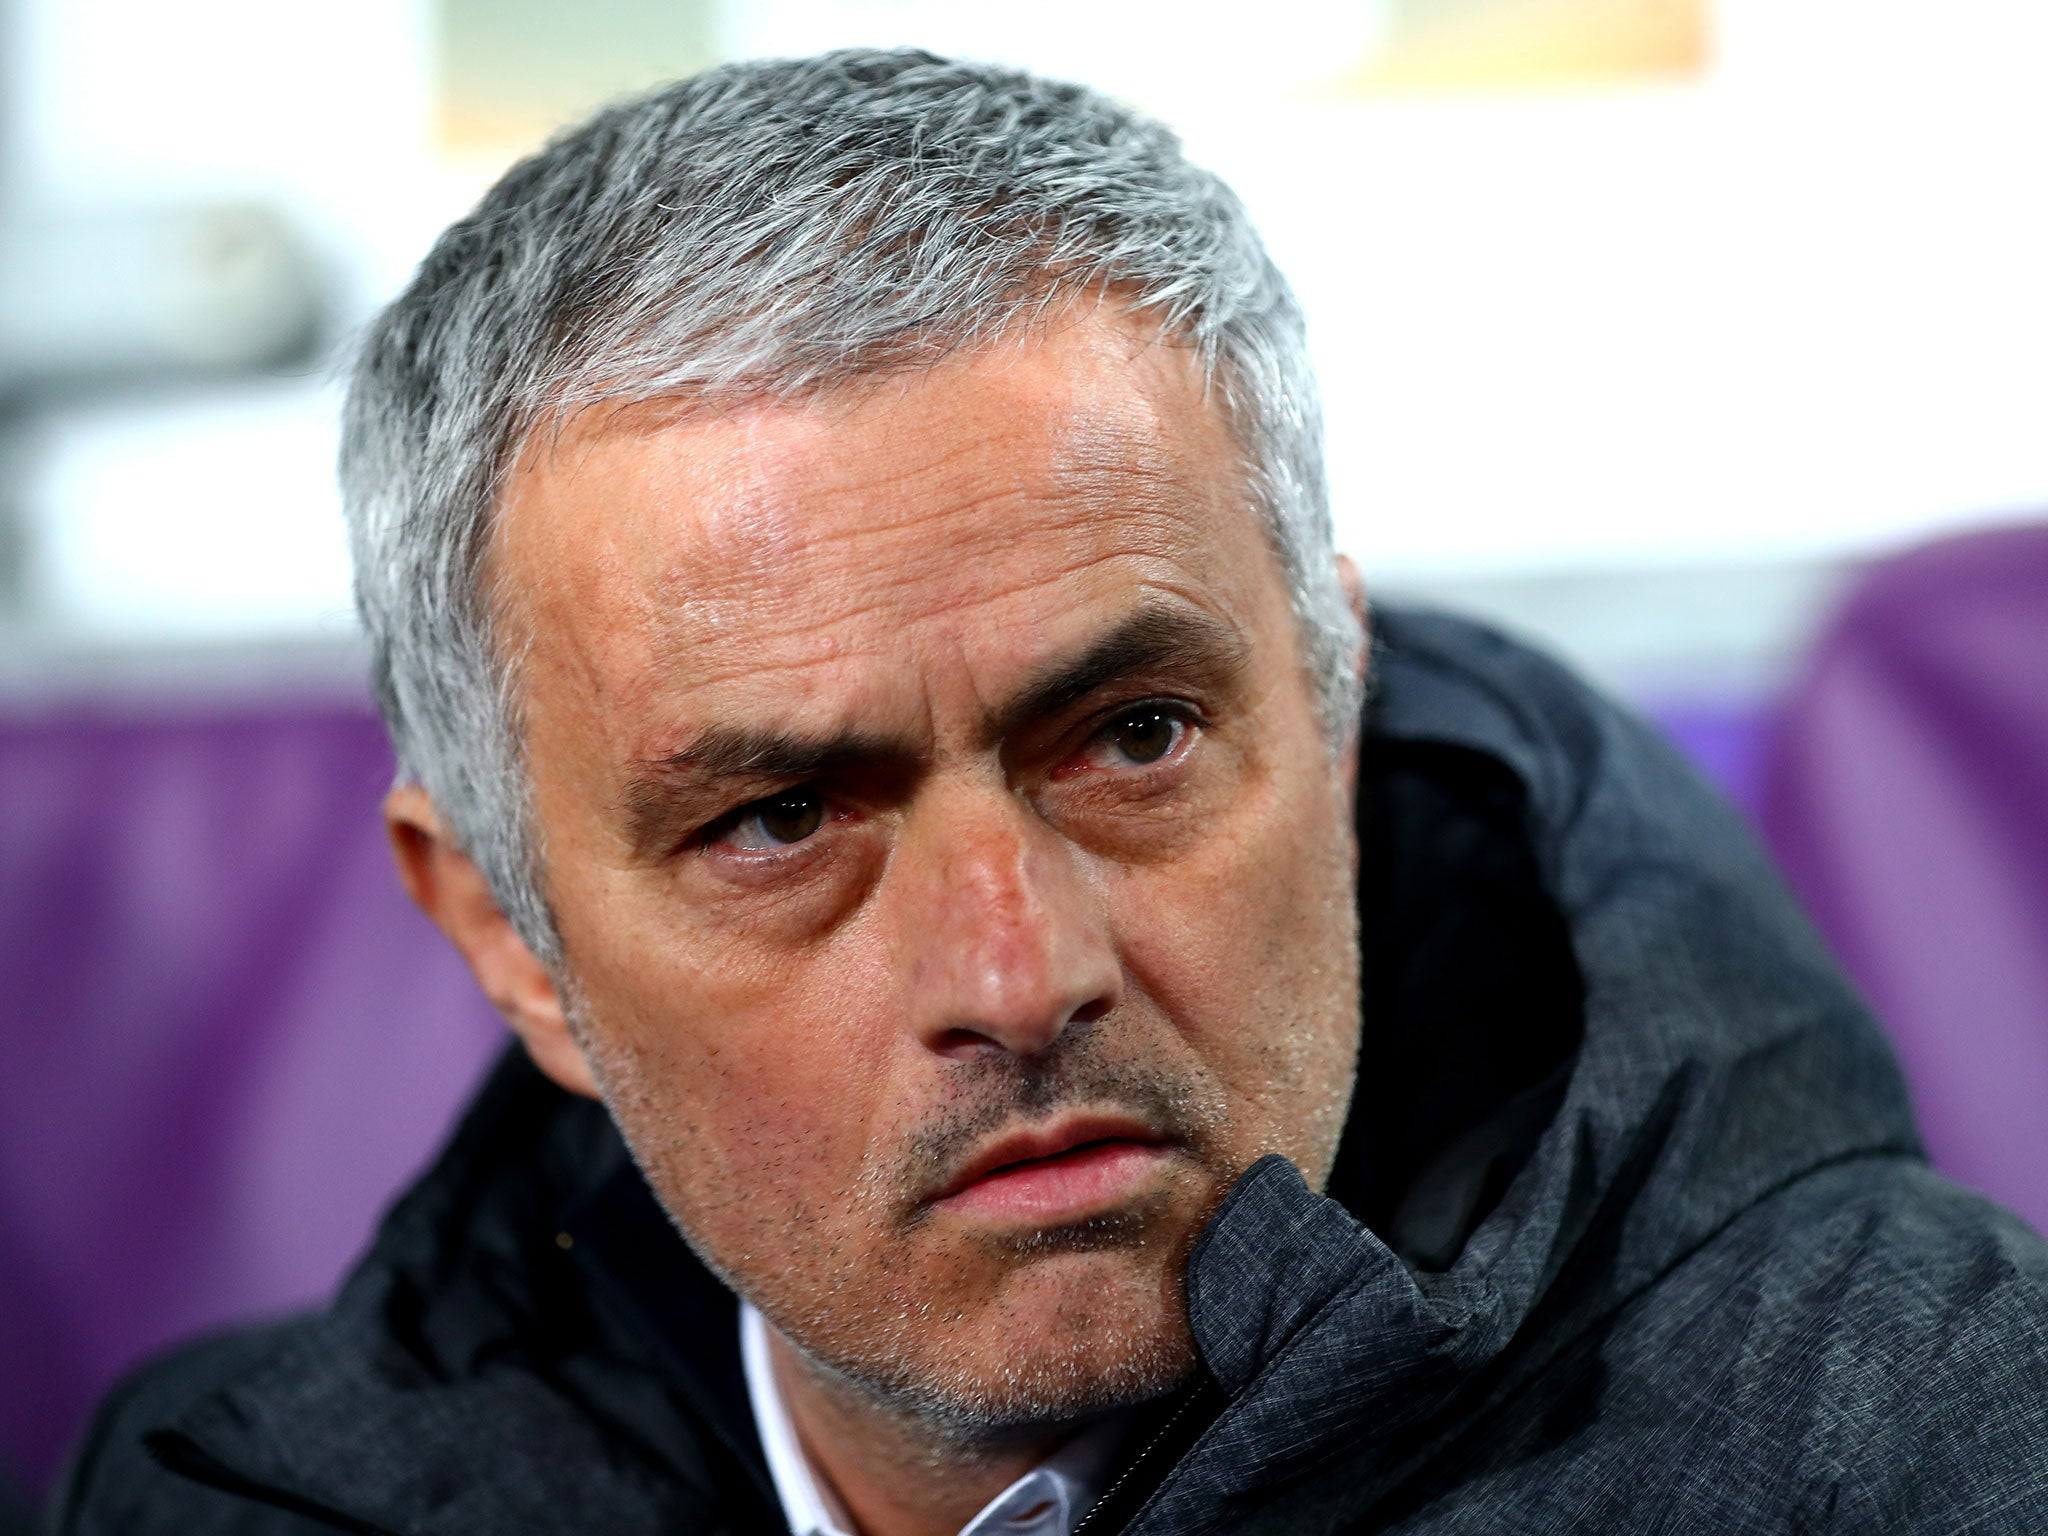 Jose Mourinho deeply hurt by Chelsea fans mocking Judas